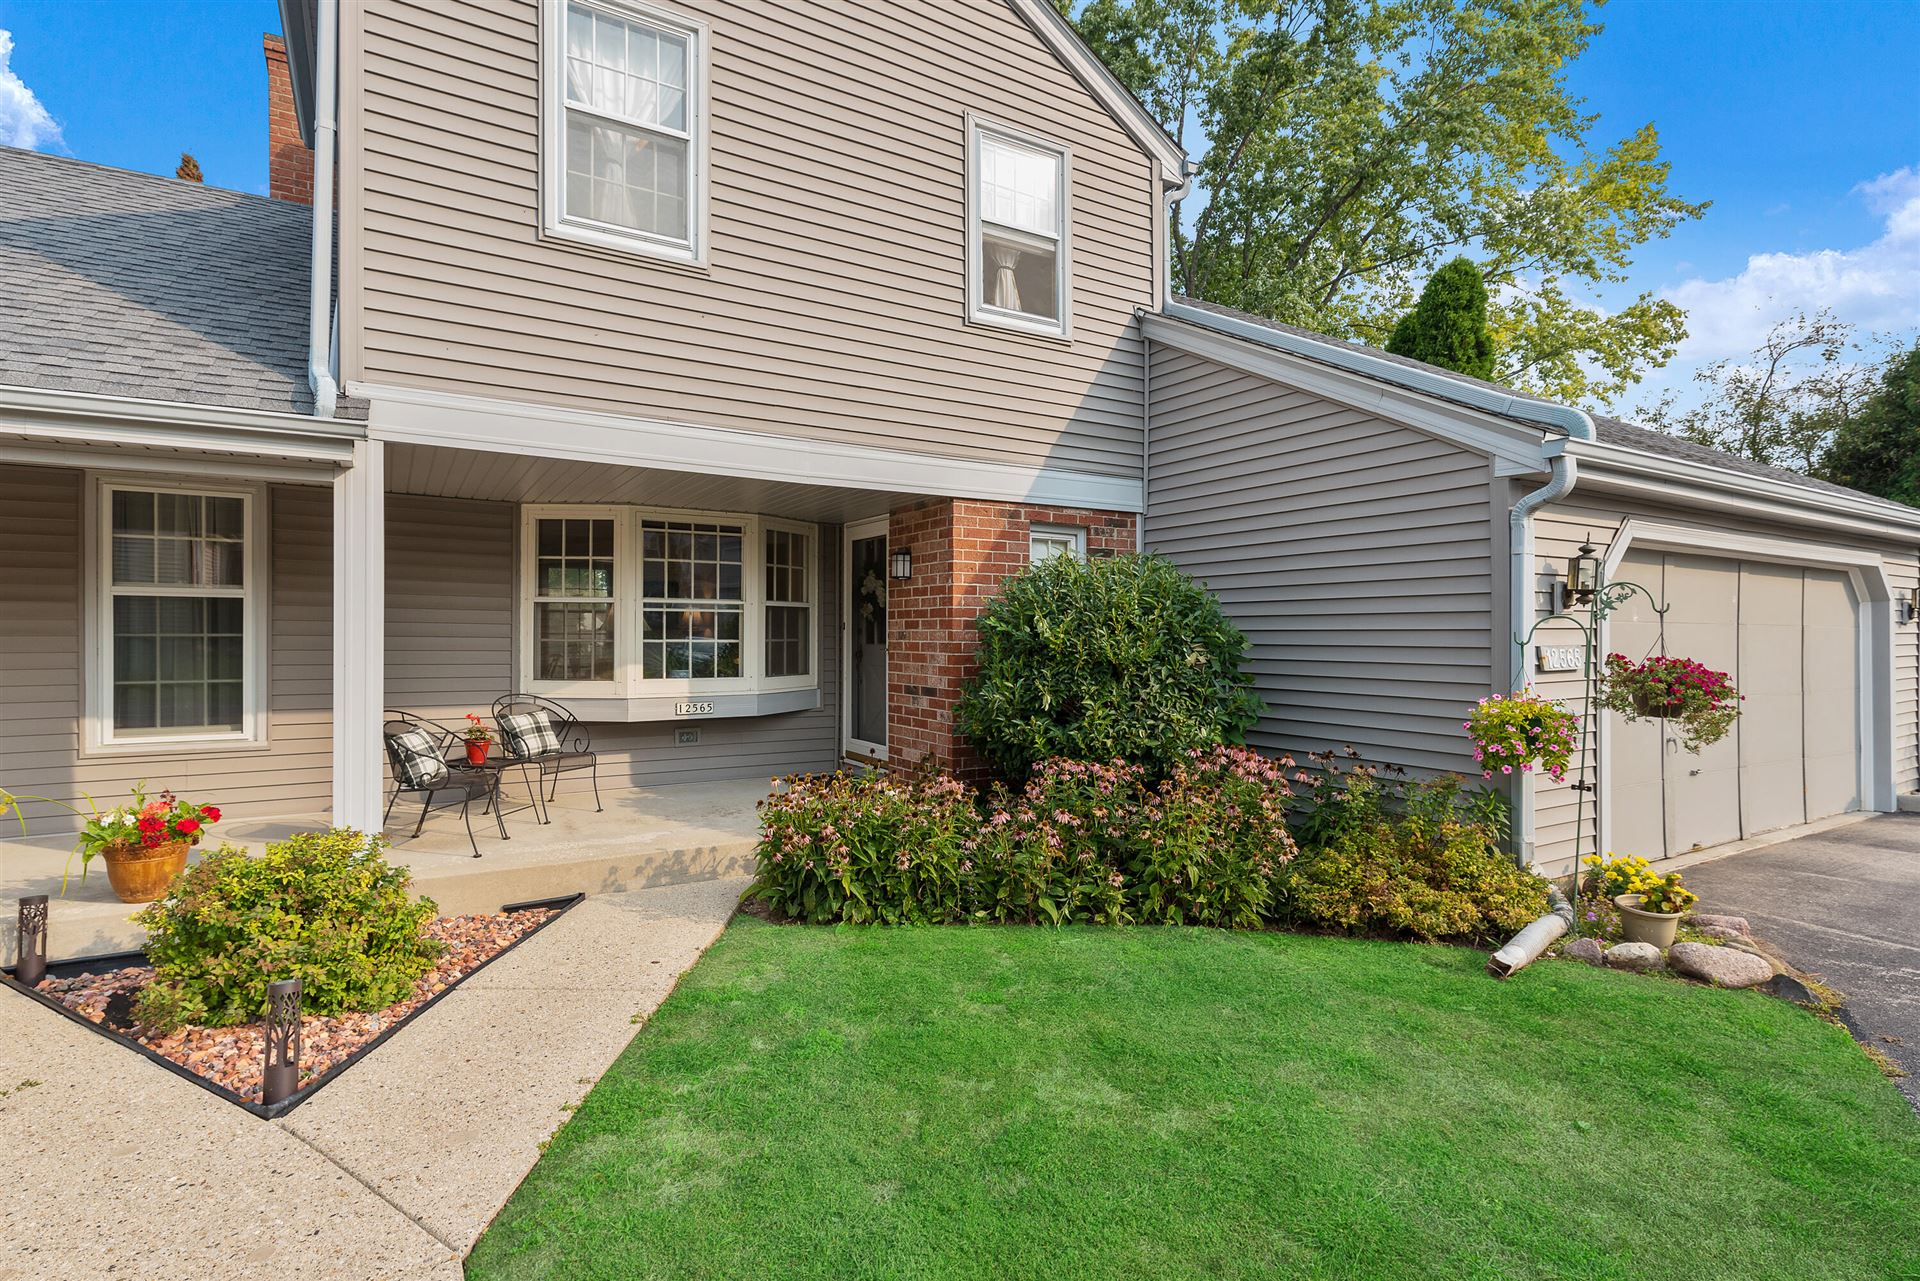 12565 N Woodberry Dr, Mequon, WI 53092 - #: 1762251